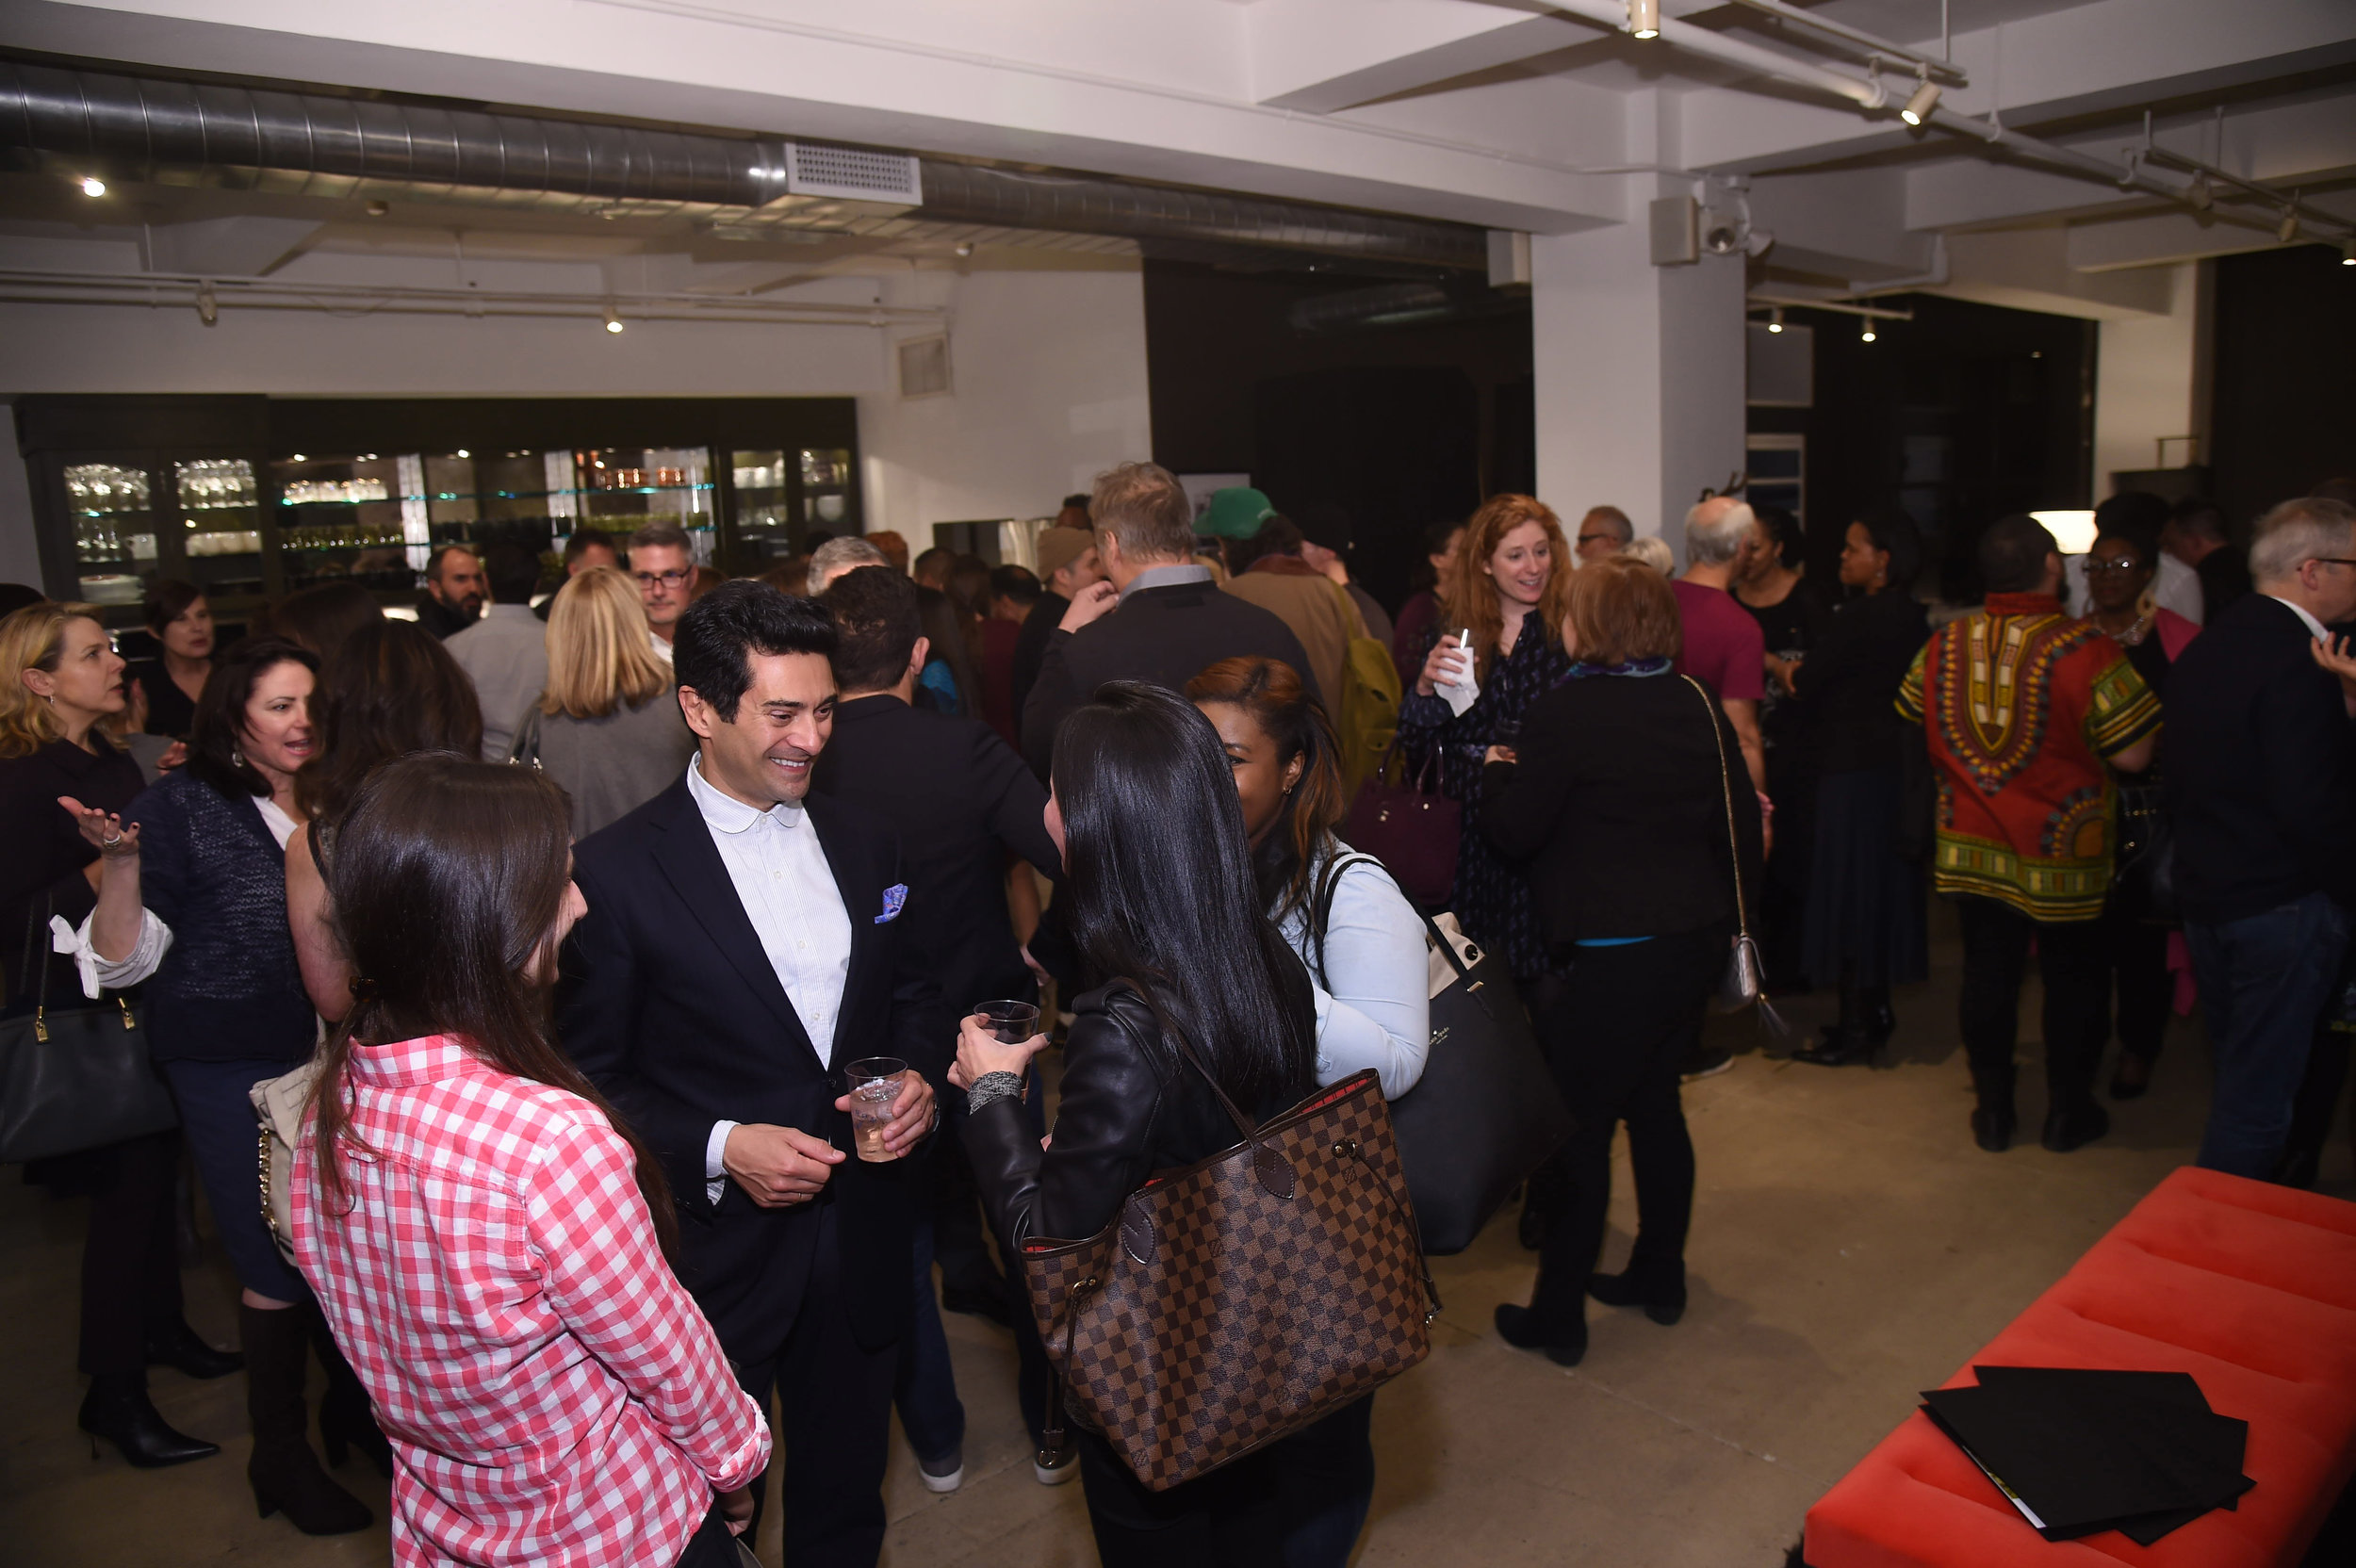 design-on-a-dime-nyc-2017-kick-off-party_32519721404_o.jpg